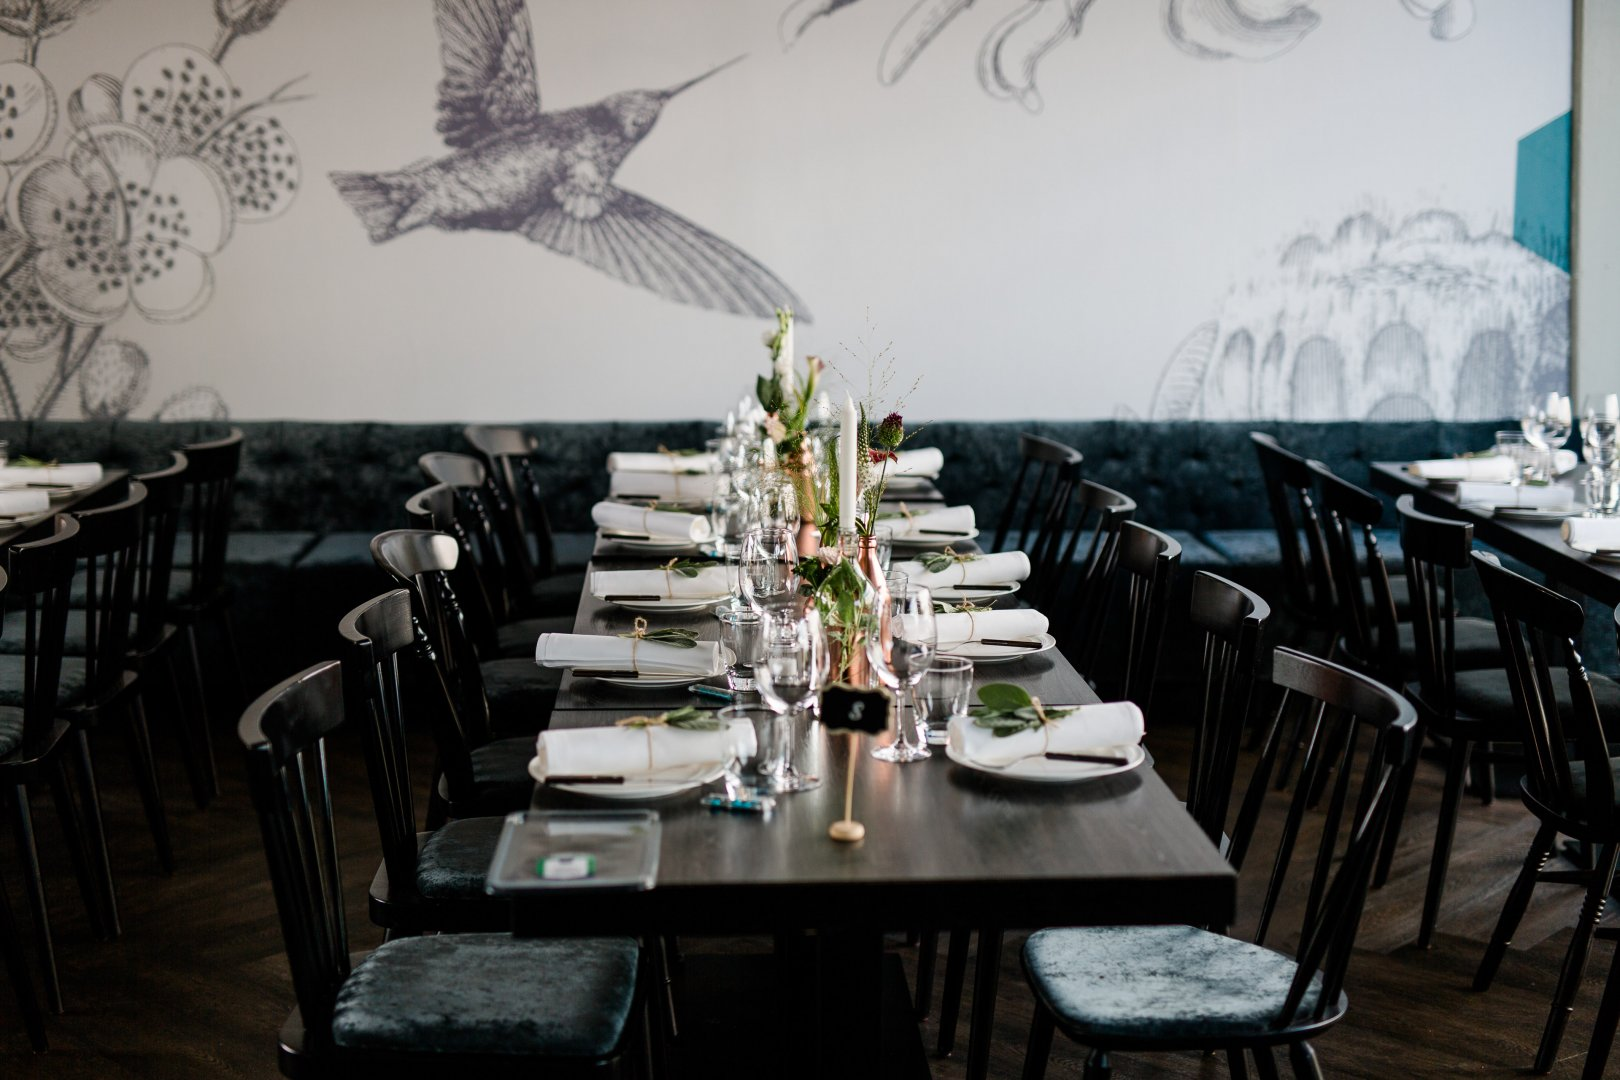 Restaurant Table Room Rehearsal dinner Chair Furniture Atmosphere Tree Textile Meal Event Interior design Plant Lunch Brunch Business Dining room Flower Organization Function hall Building Dinner